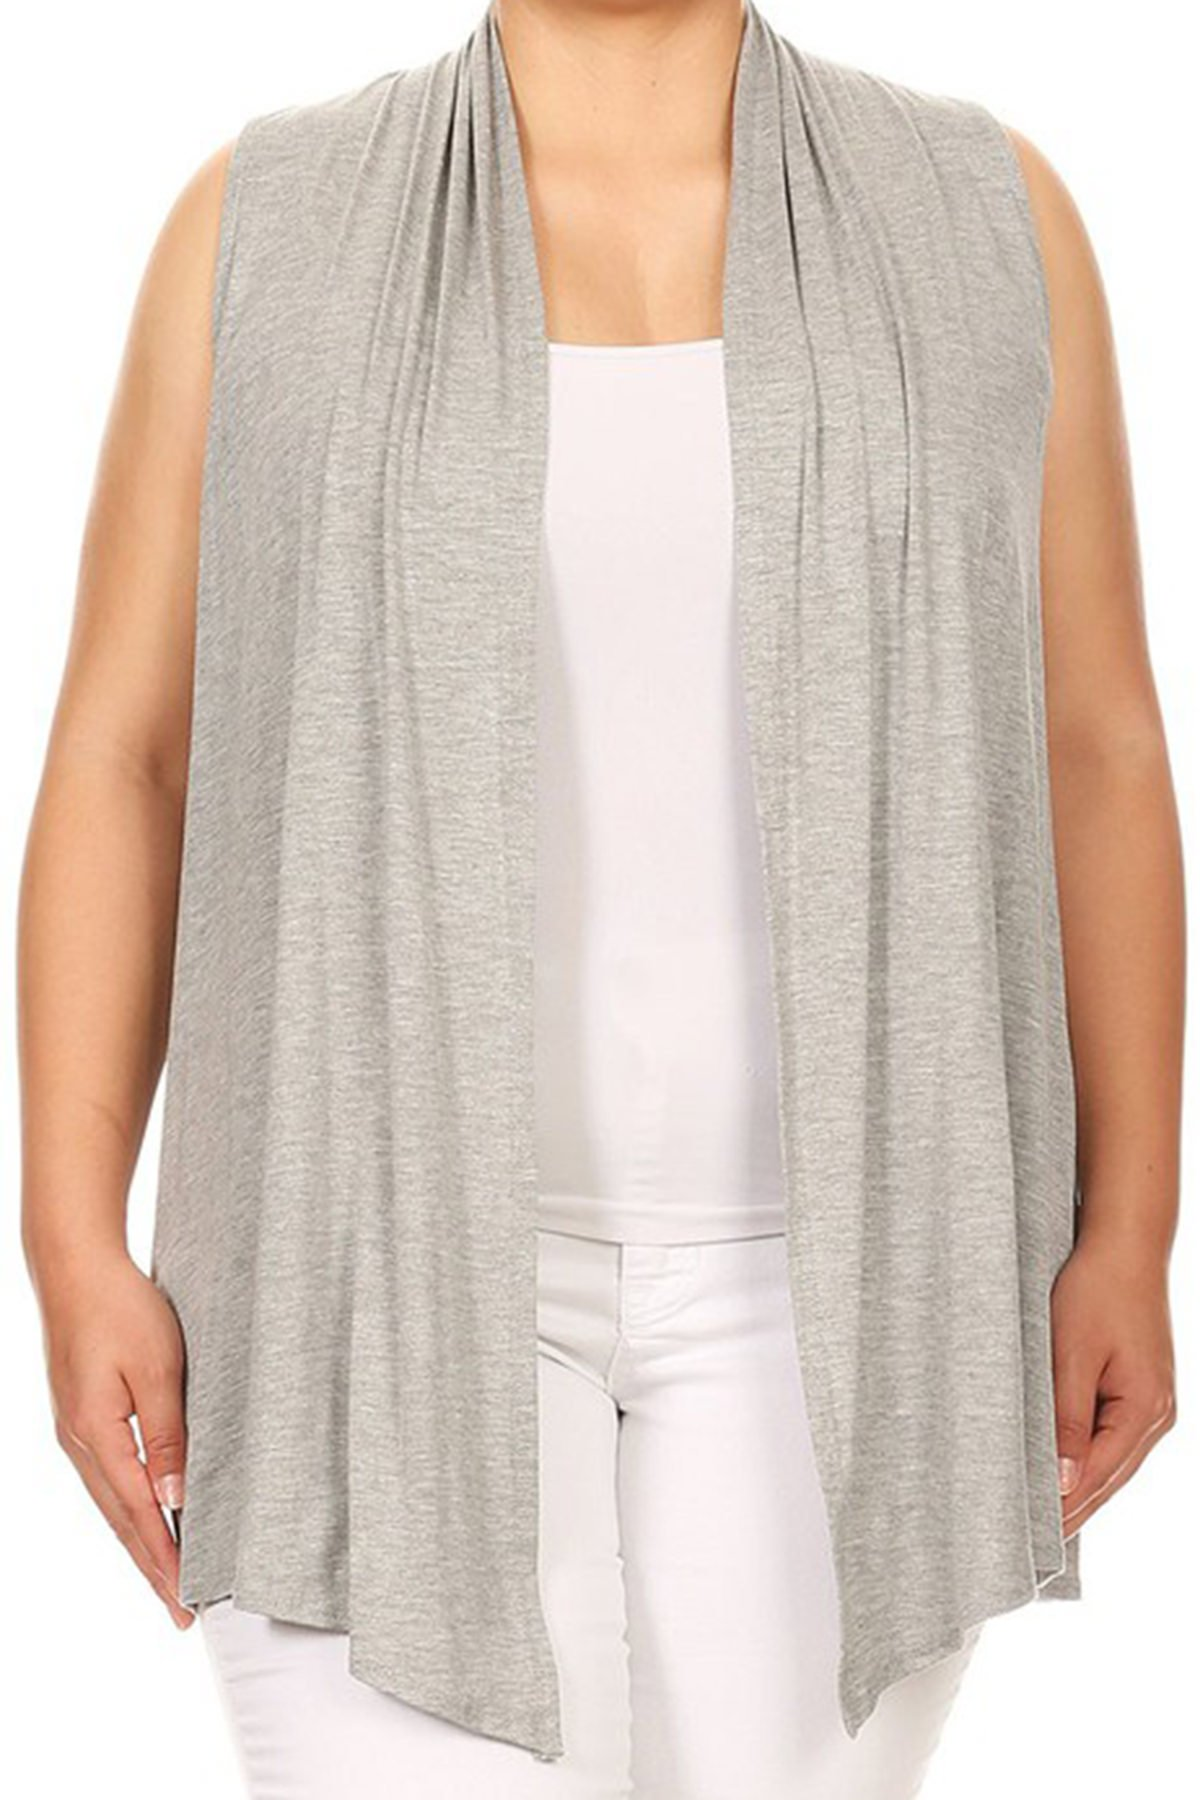 BNY Corner Women Plus Size Sleeveless Cardigan Open Front Casual Vest Cover up Heather Grey 2 X 622 SD